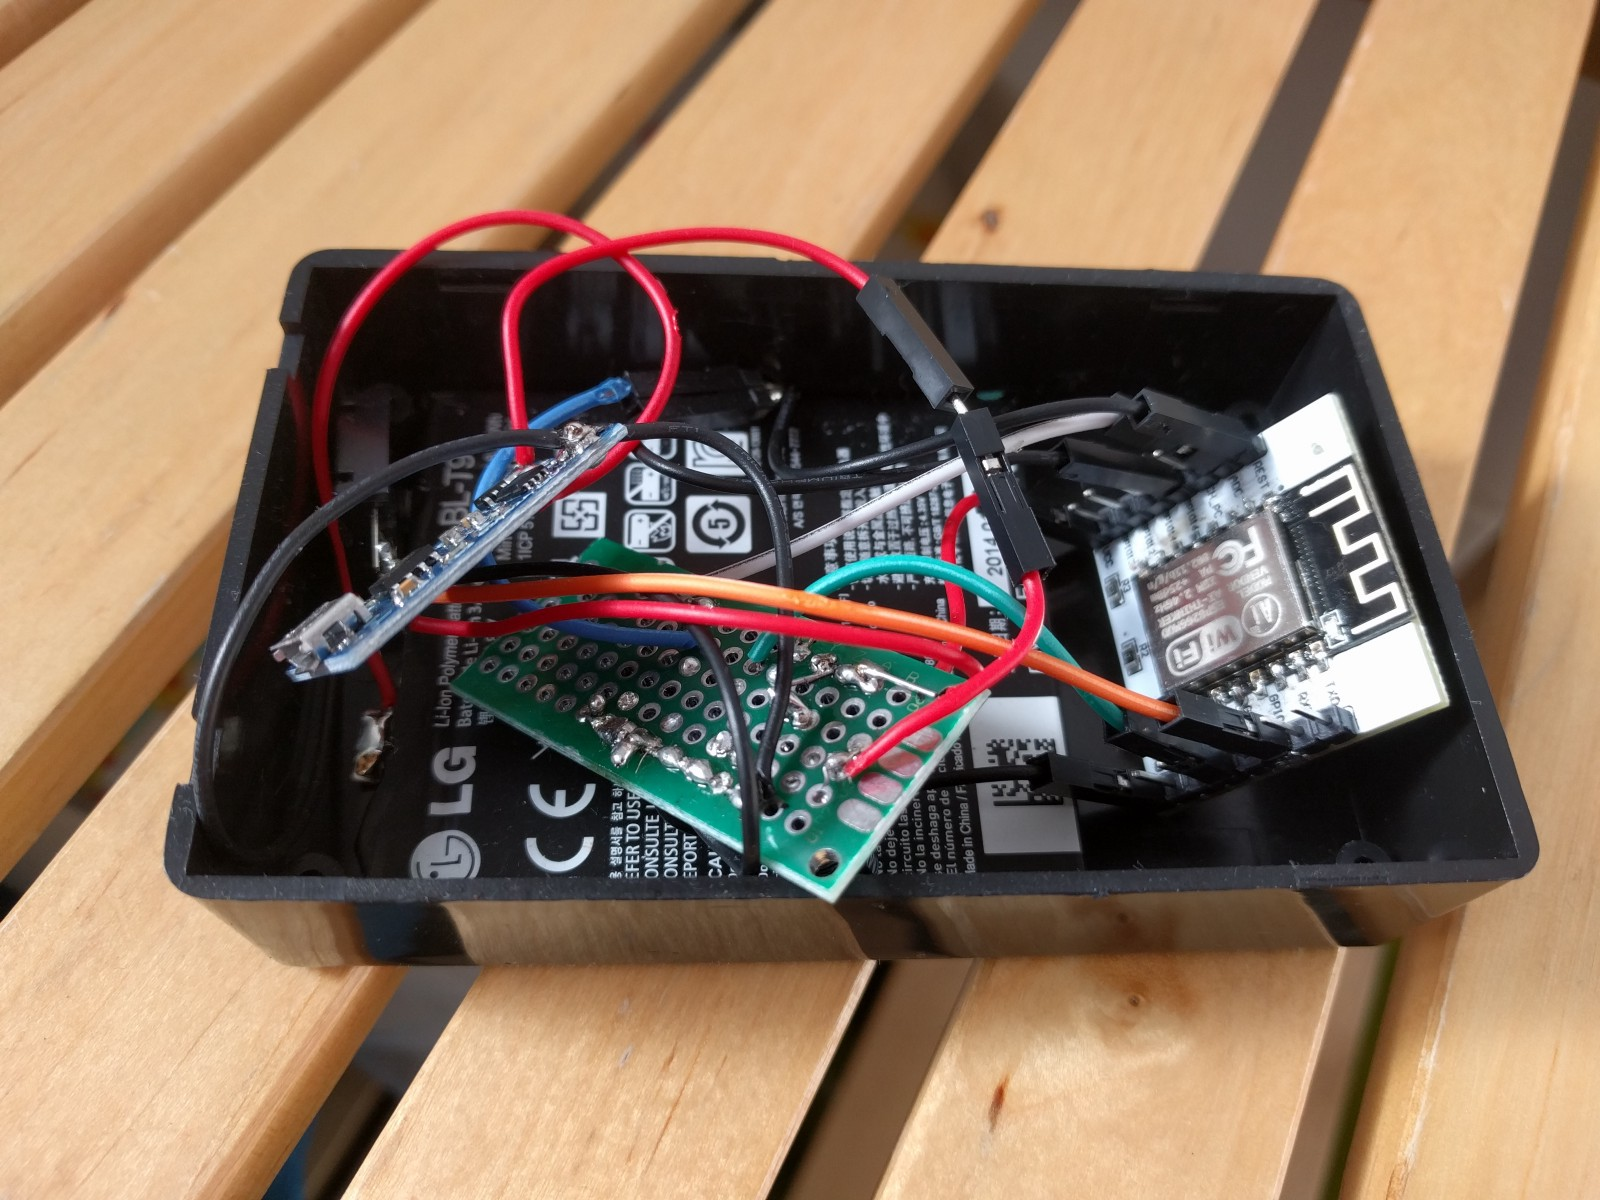 Iot Analytics With Qlik Sense Branch Circuit Prototyping Software The Device Is Powered By Lipo Battery Pack That Protected A Tp4056 Charger And Regulated Ht7333 Ldo Voltage Measured